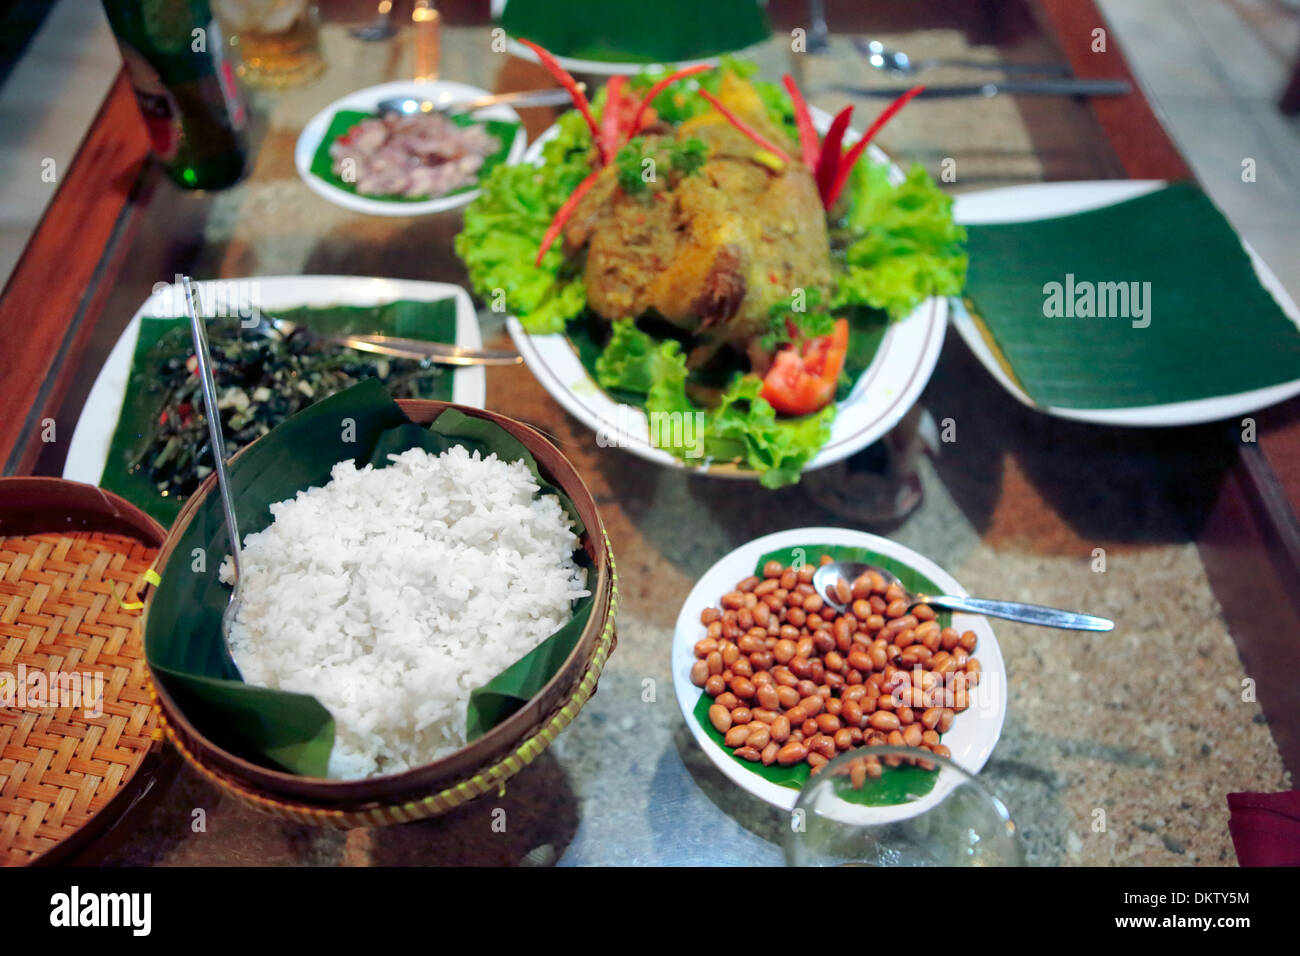 Restaurant in Badini guest house, Pemuteran, Bali, Indonesia - Stock Image